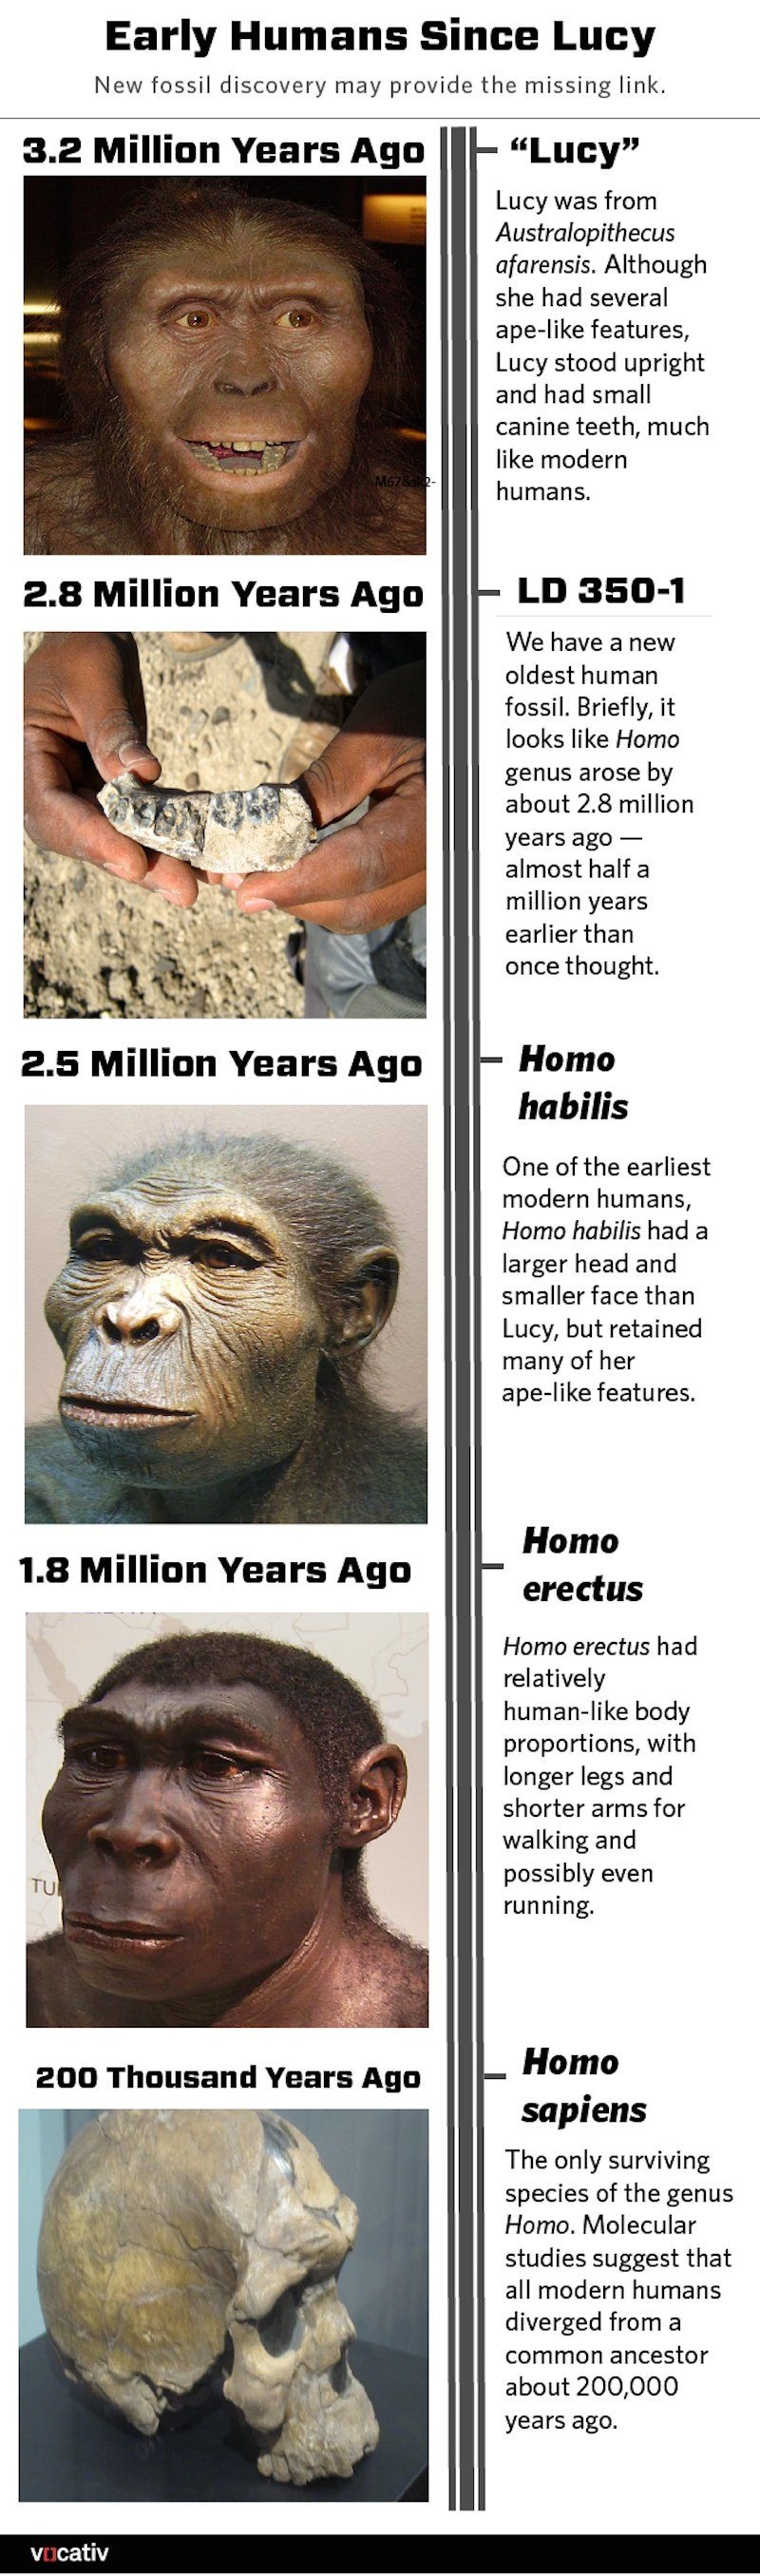 004 Two new fossils just rewrote the timeline of human